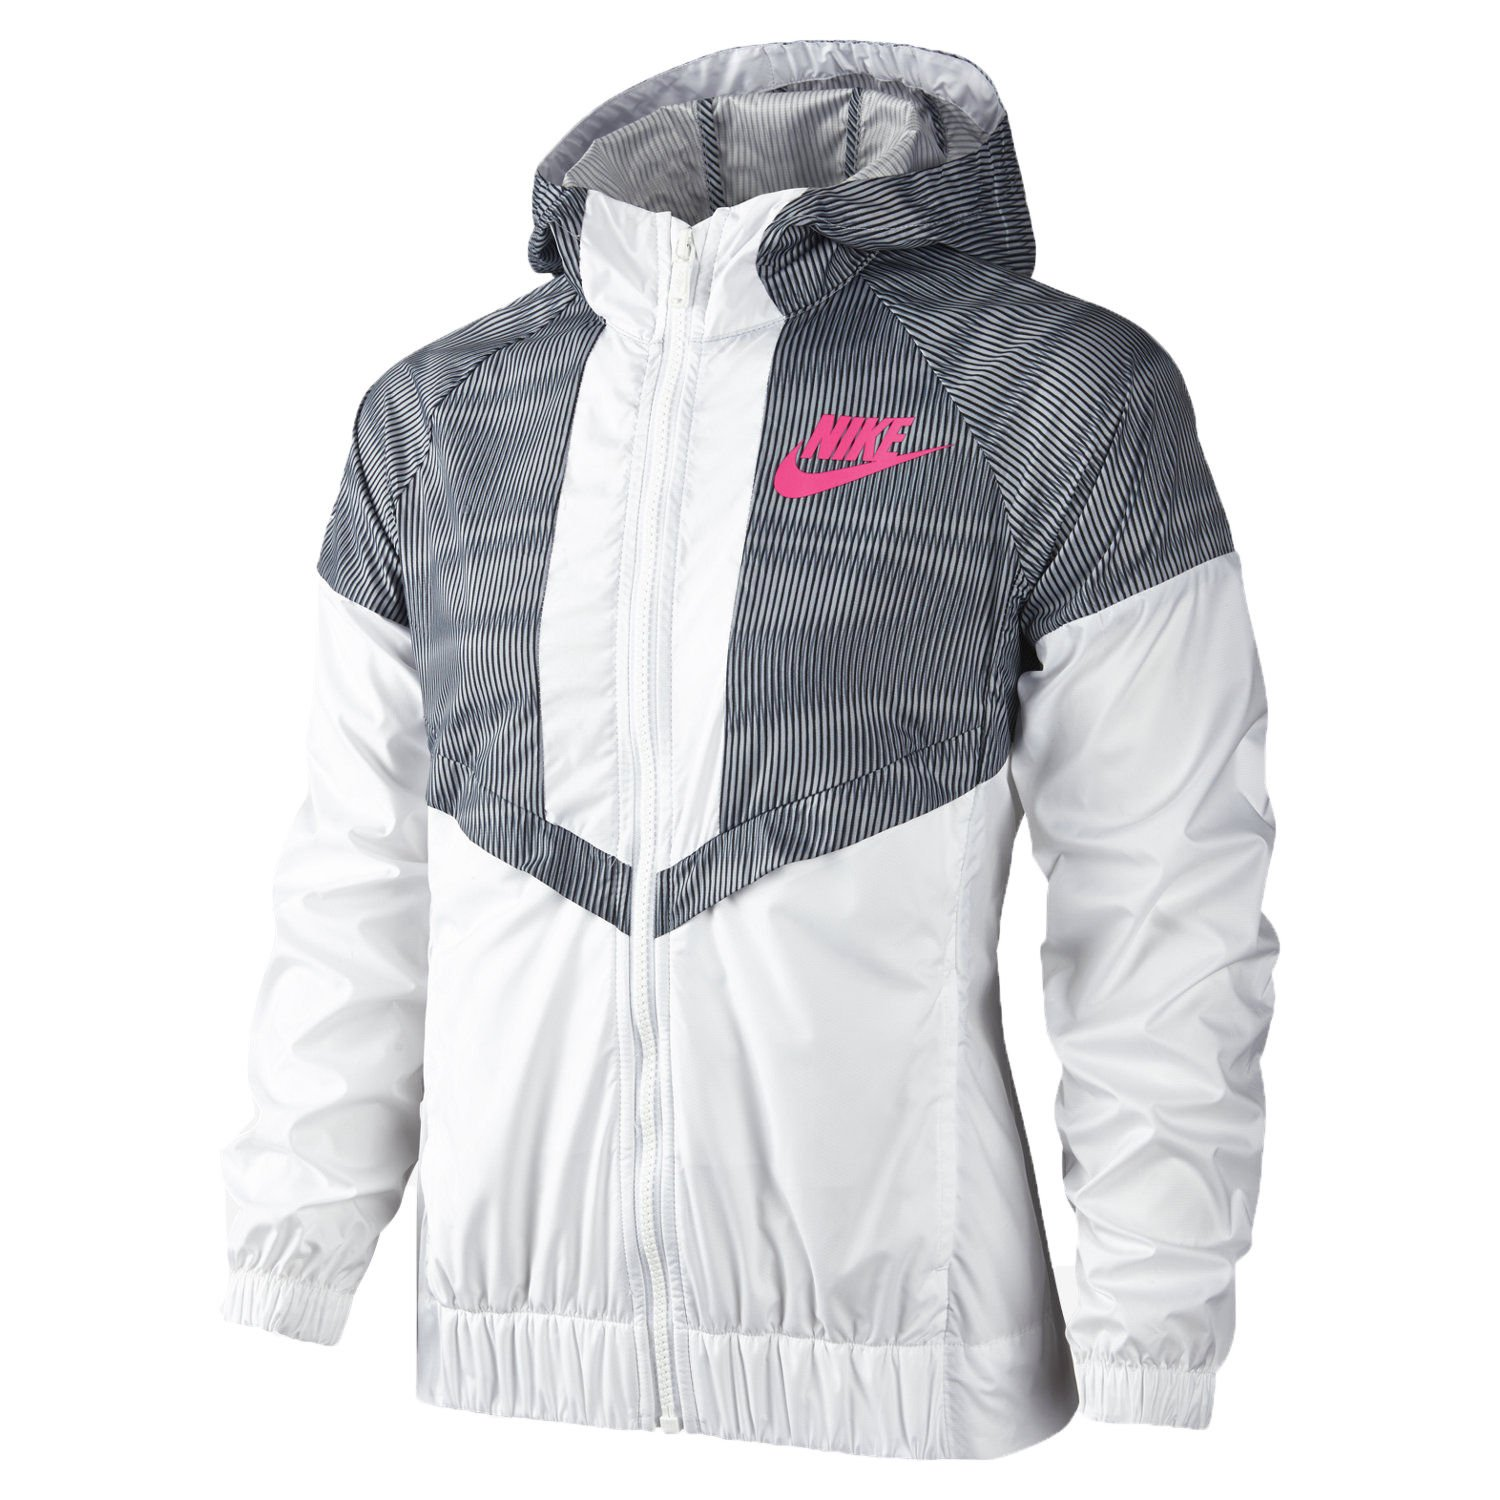 5b1c331f6cc7 Amazon.com  Nike Windrunner Big Kids  (Girls ) Jacket  Clothing